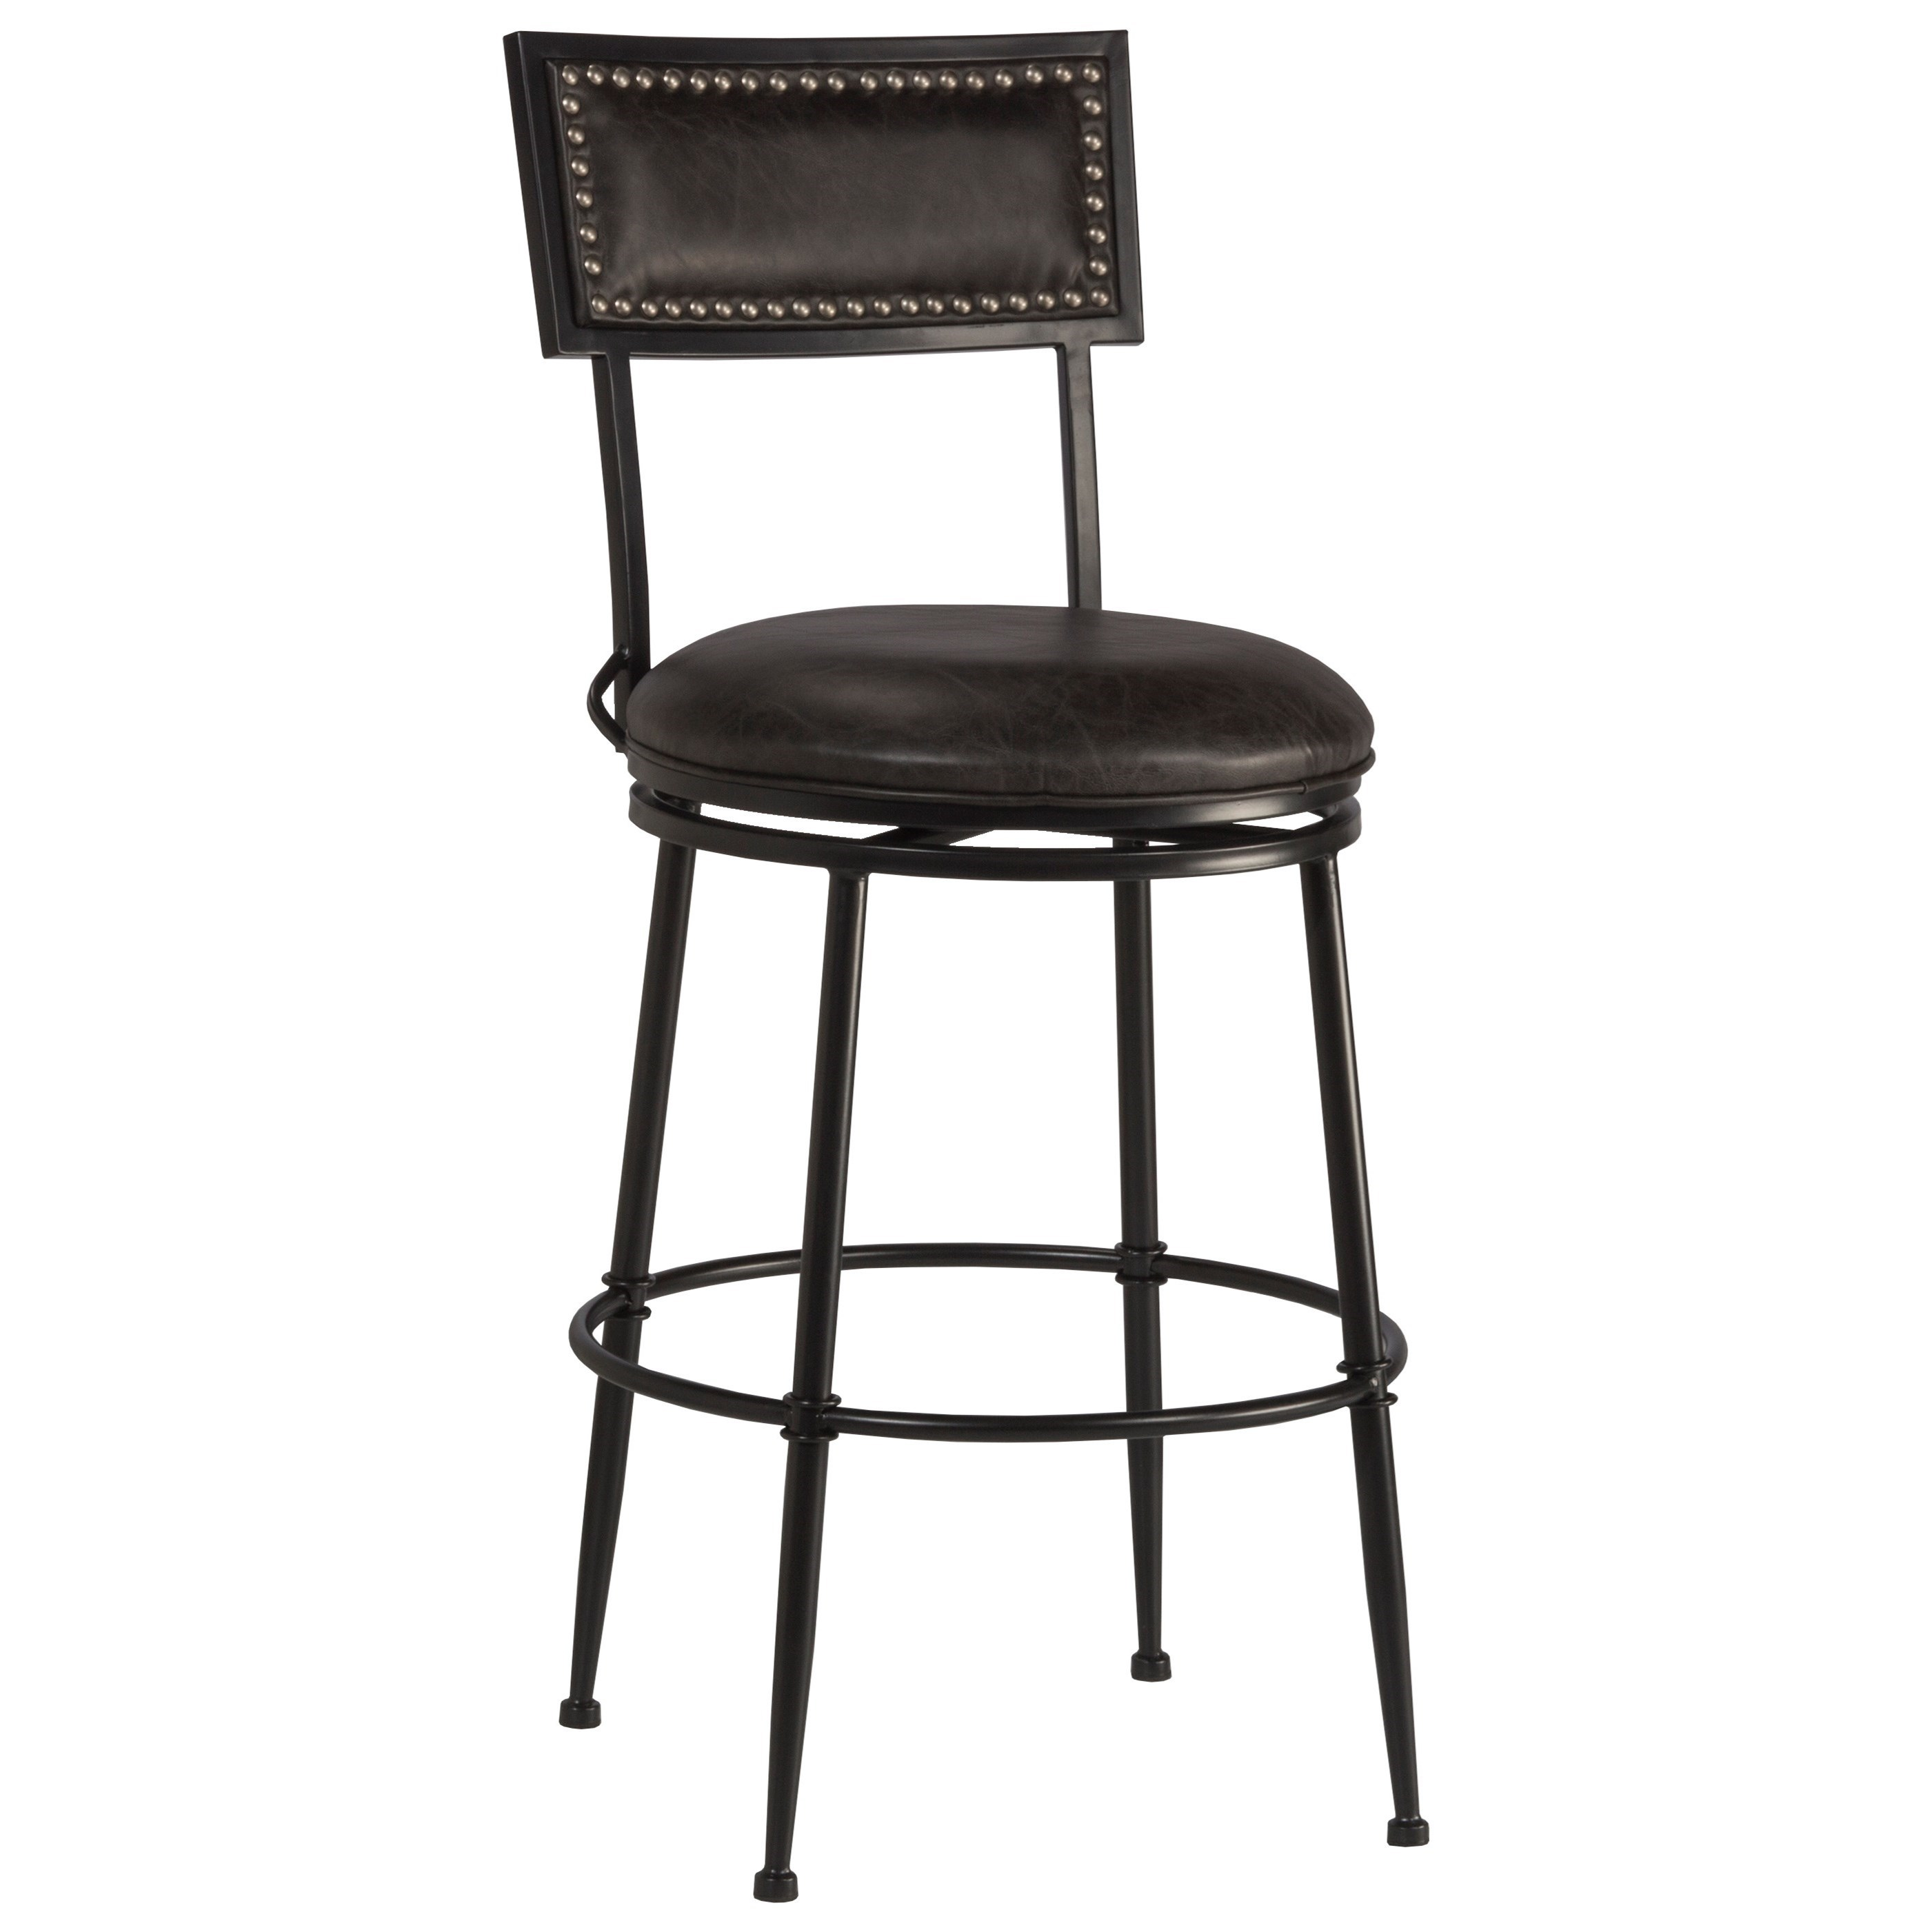 Thielmann Commercial Grade Swivel Counter Stool by Hillsdale at Northeast Factory Direct